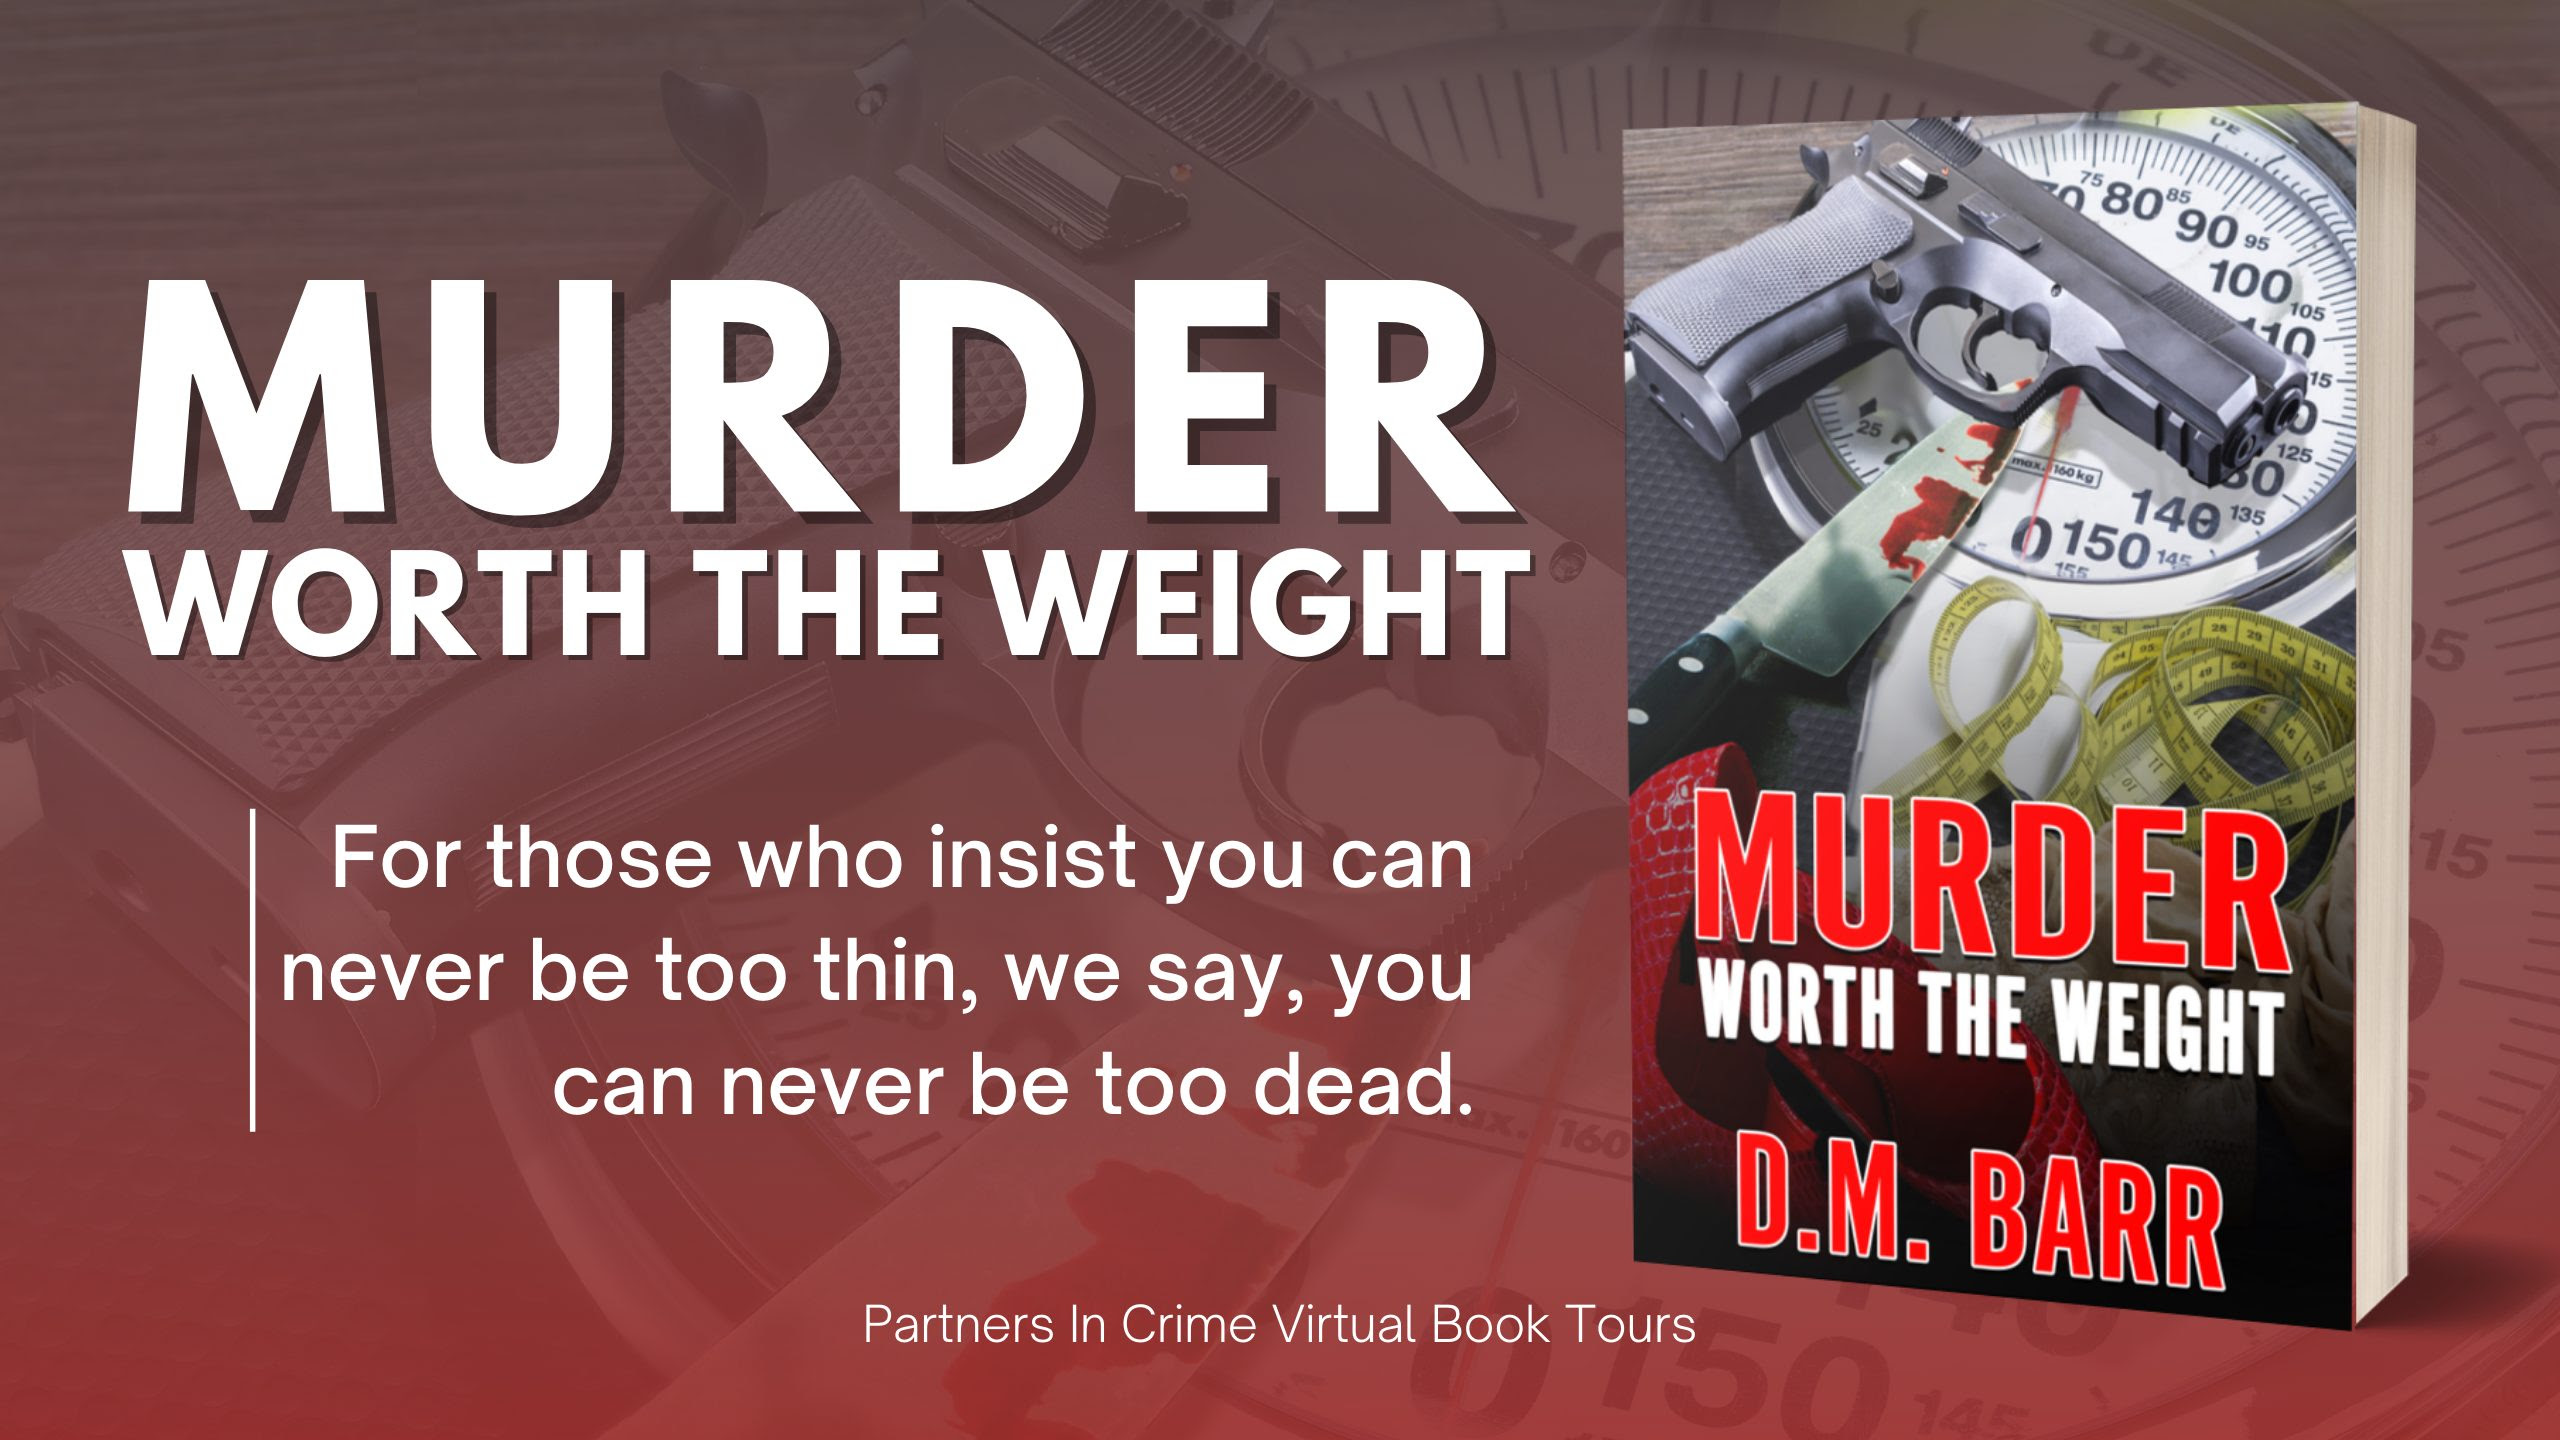 Murder Worth the Weight by D.M. Barr Banner